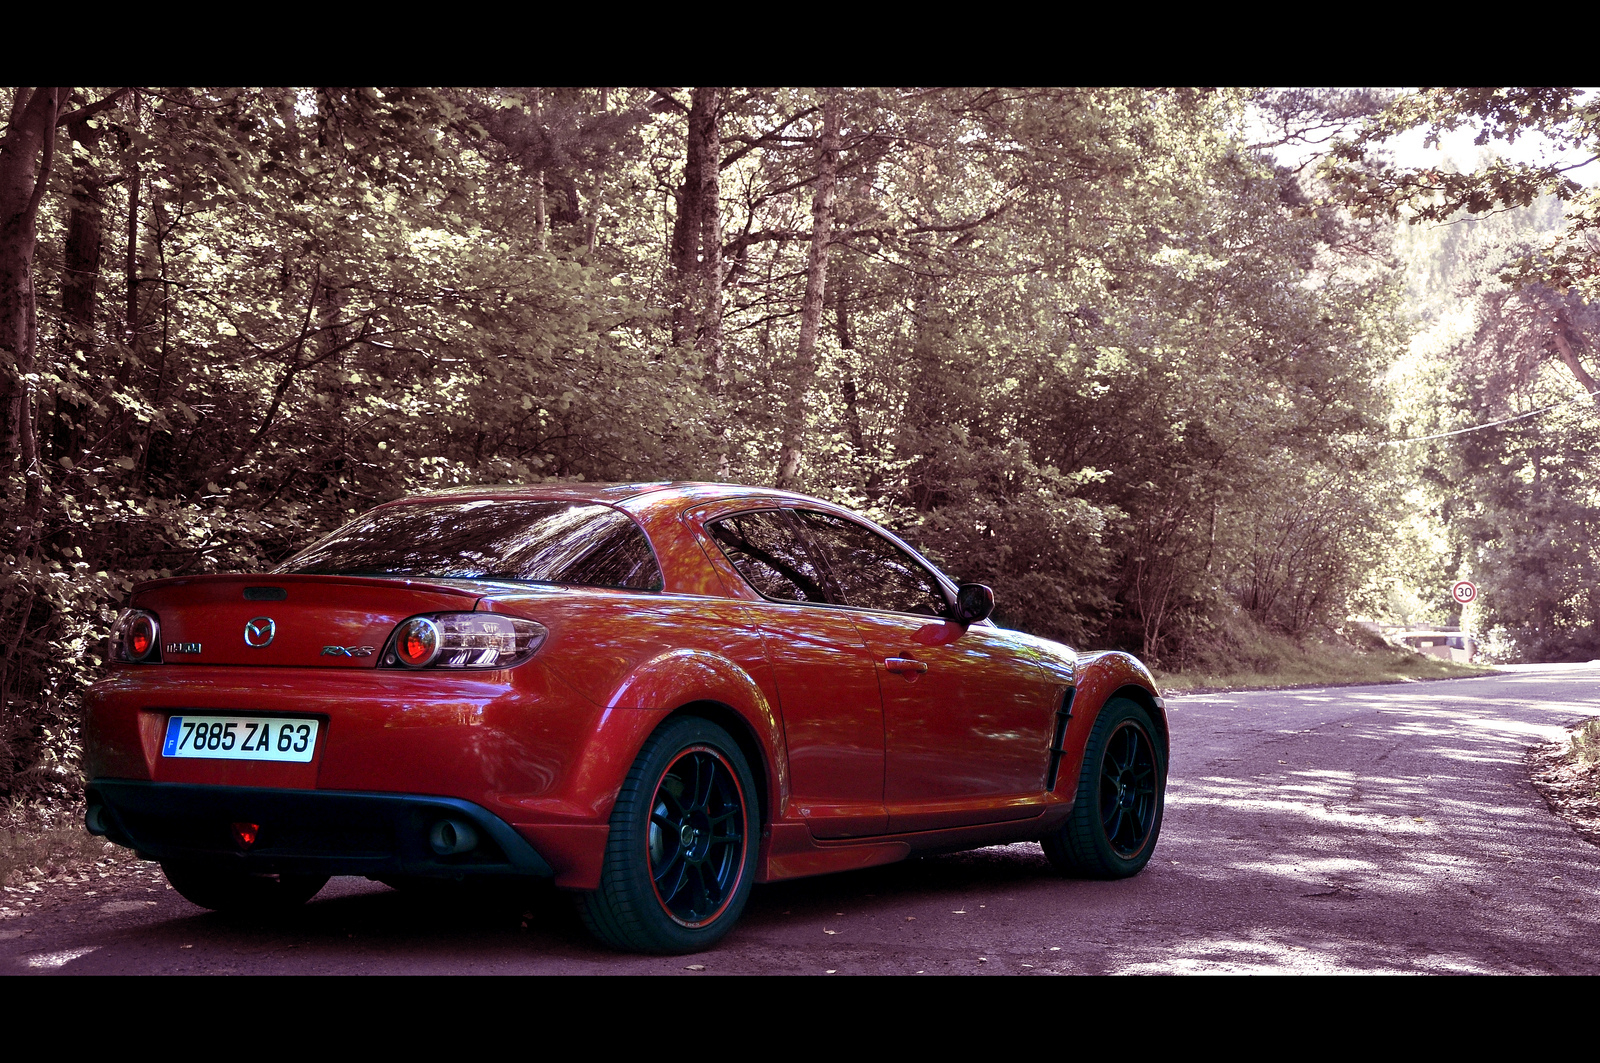 mazda rx8 octobre velocity red | Flickr - Photo Sharing!